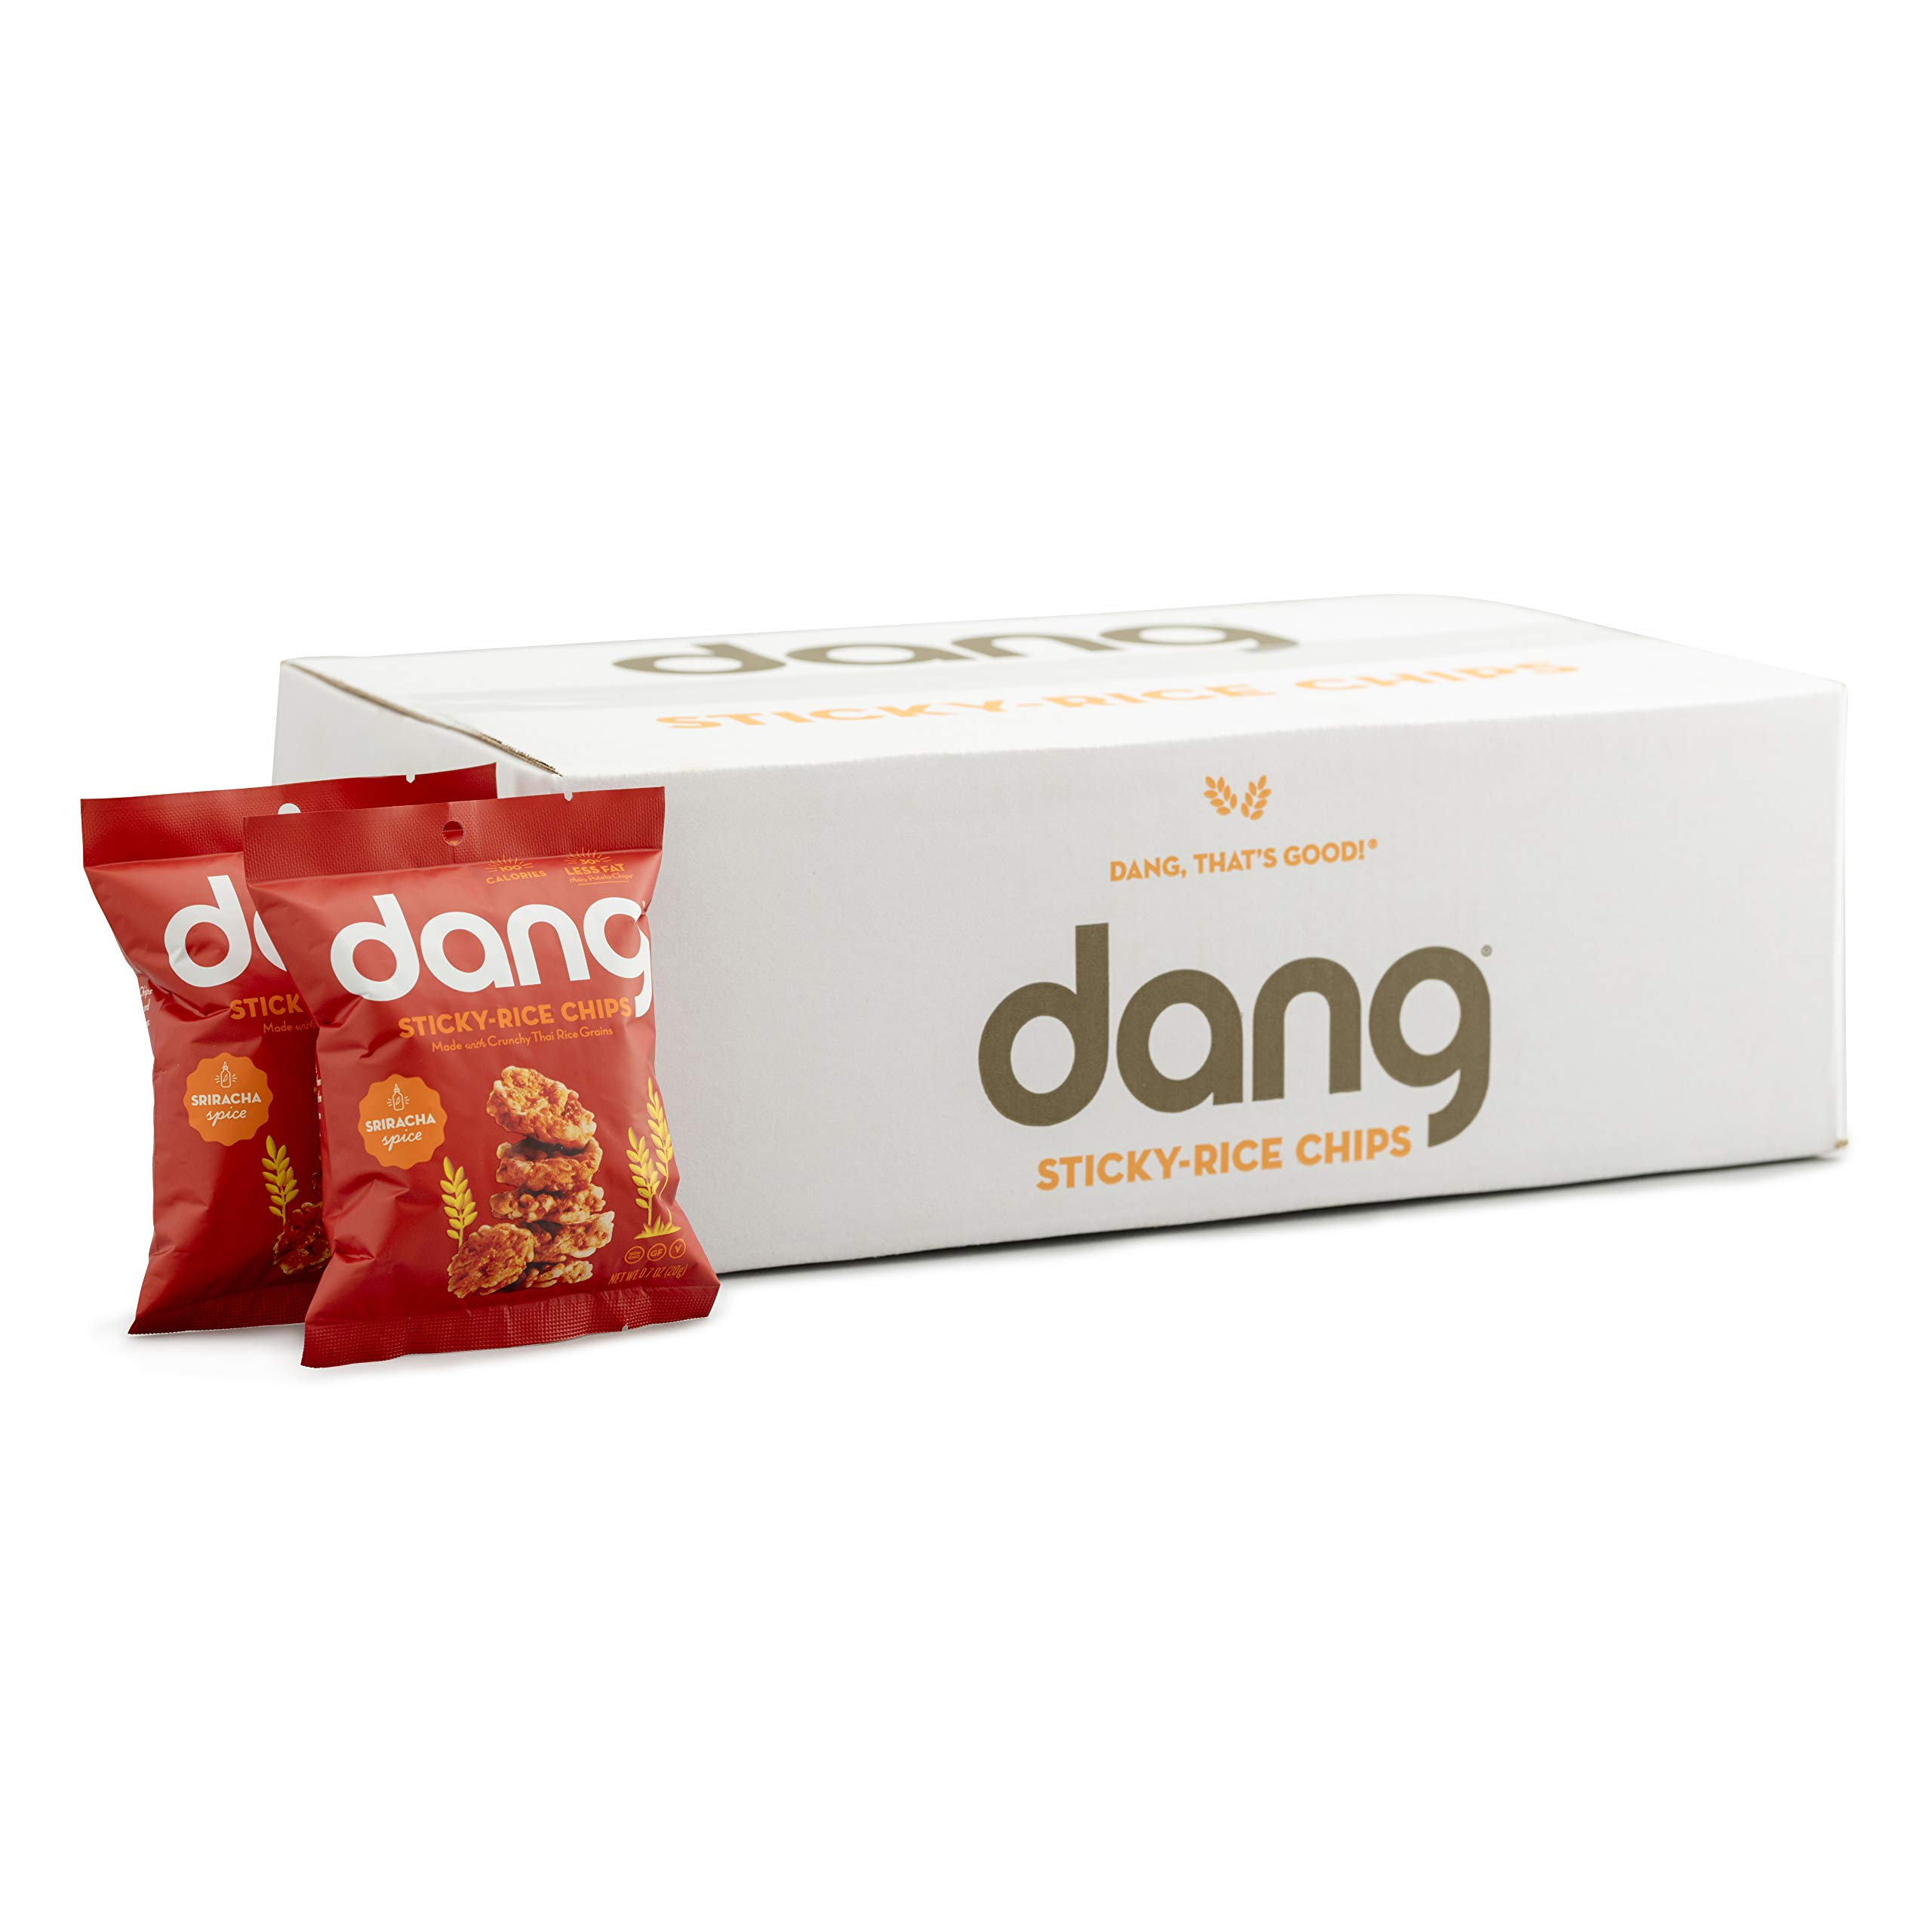 Dang Sticky-Rice Chips, Gluten-Free, Vegan, Non-GMO, Sriracha Spice 0.7 Ounce (24 Count) by DANG